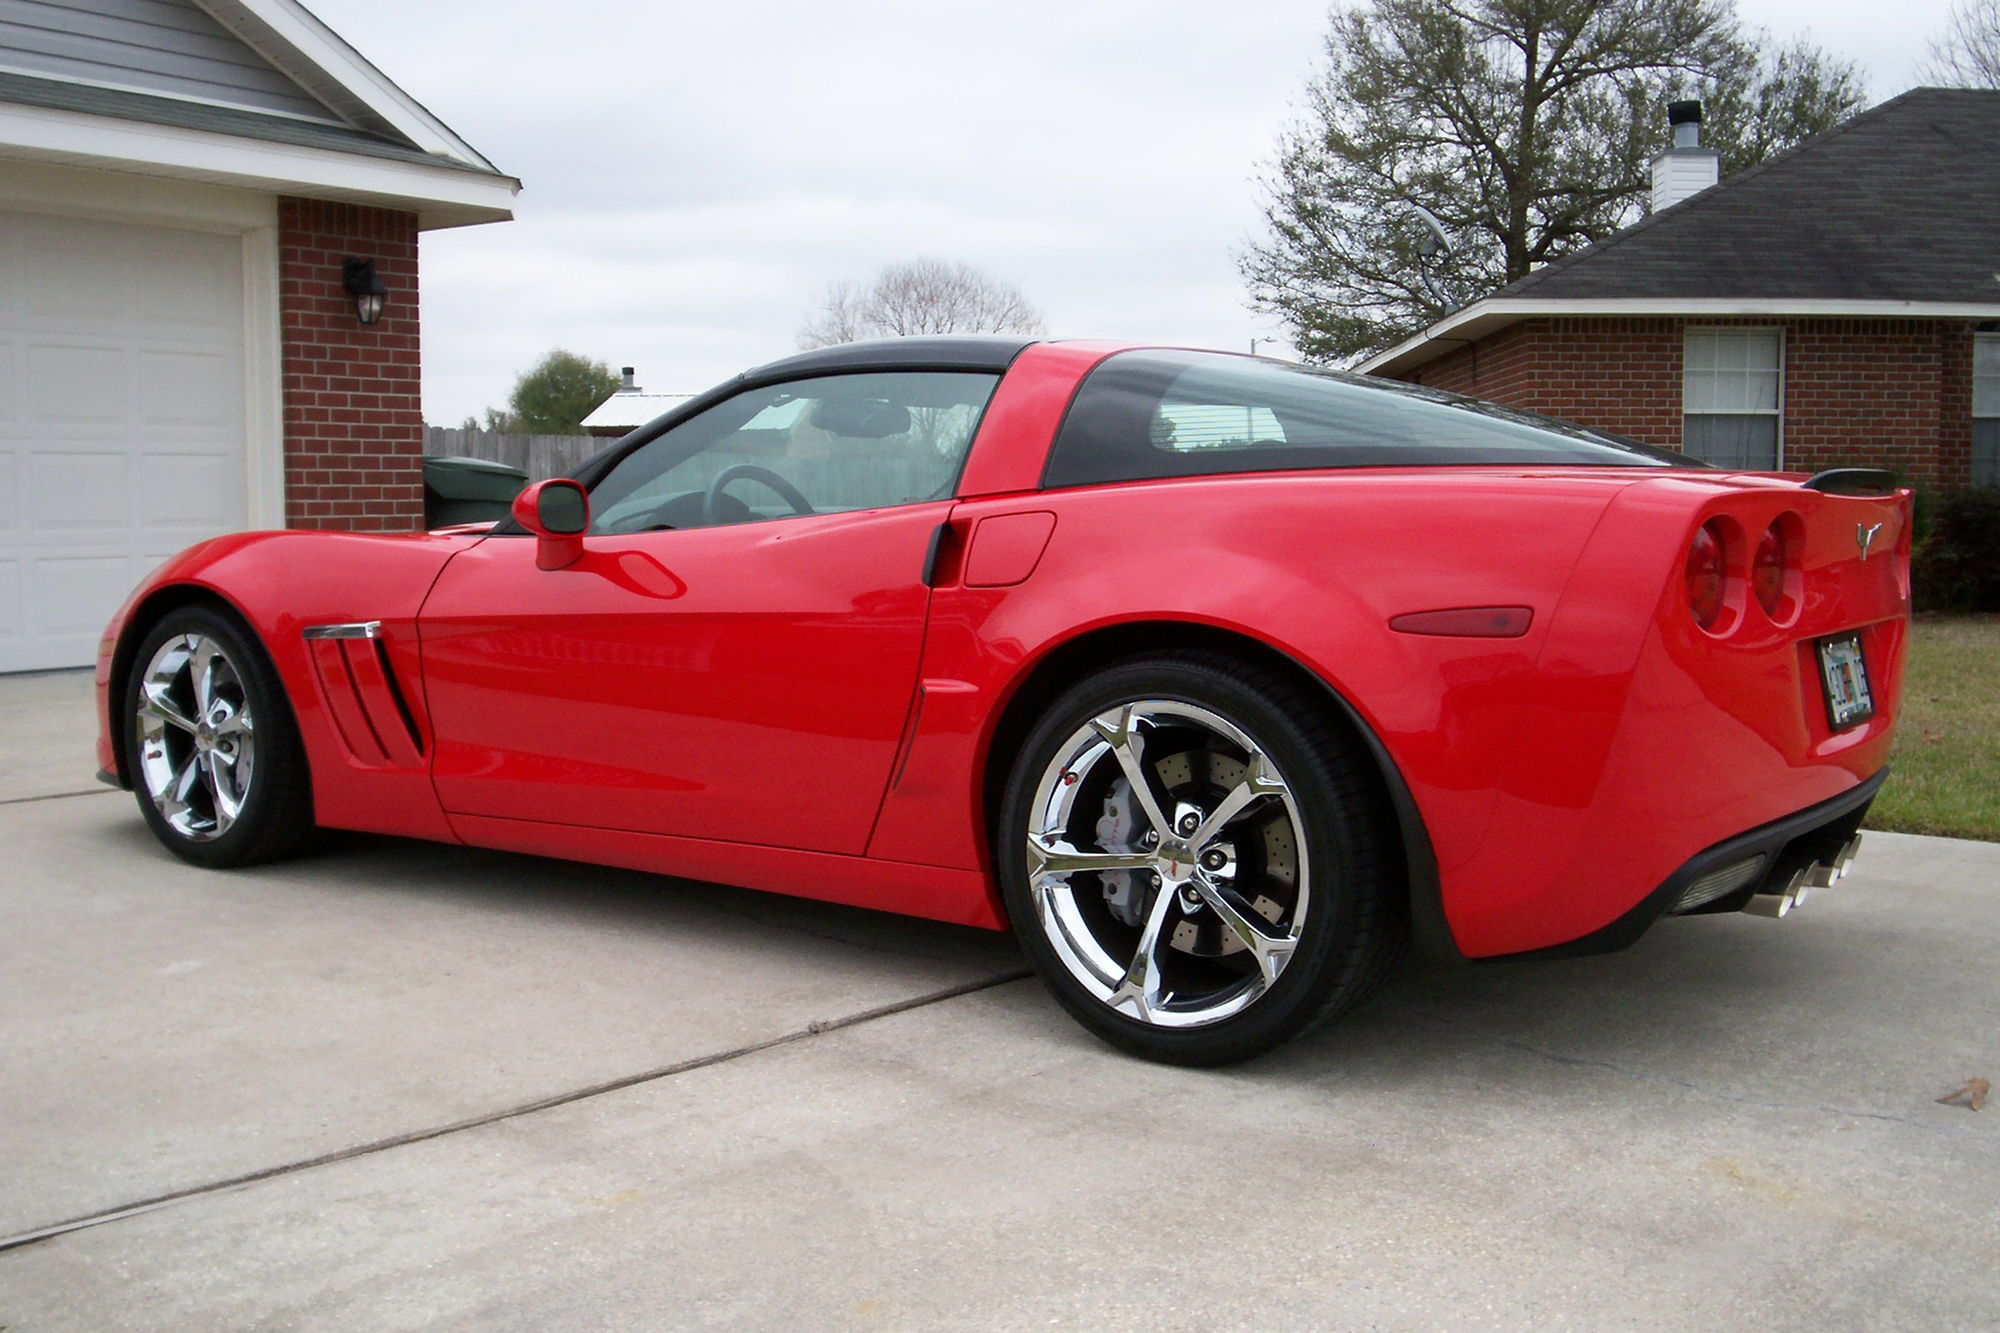 2010 torch red grand sport for sale corvetteforum chevrolet corvette forum discussion. Black Bedroom Furniture Sets. Home Design Ideas